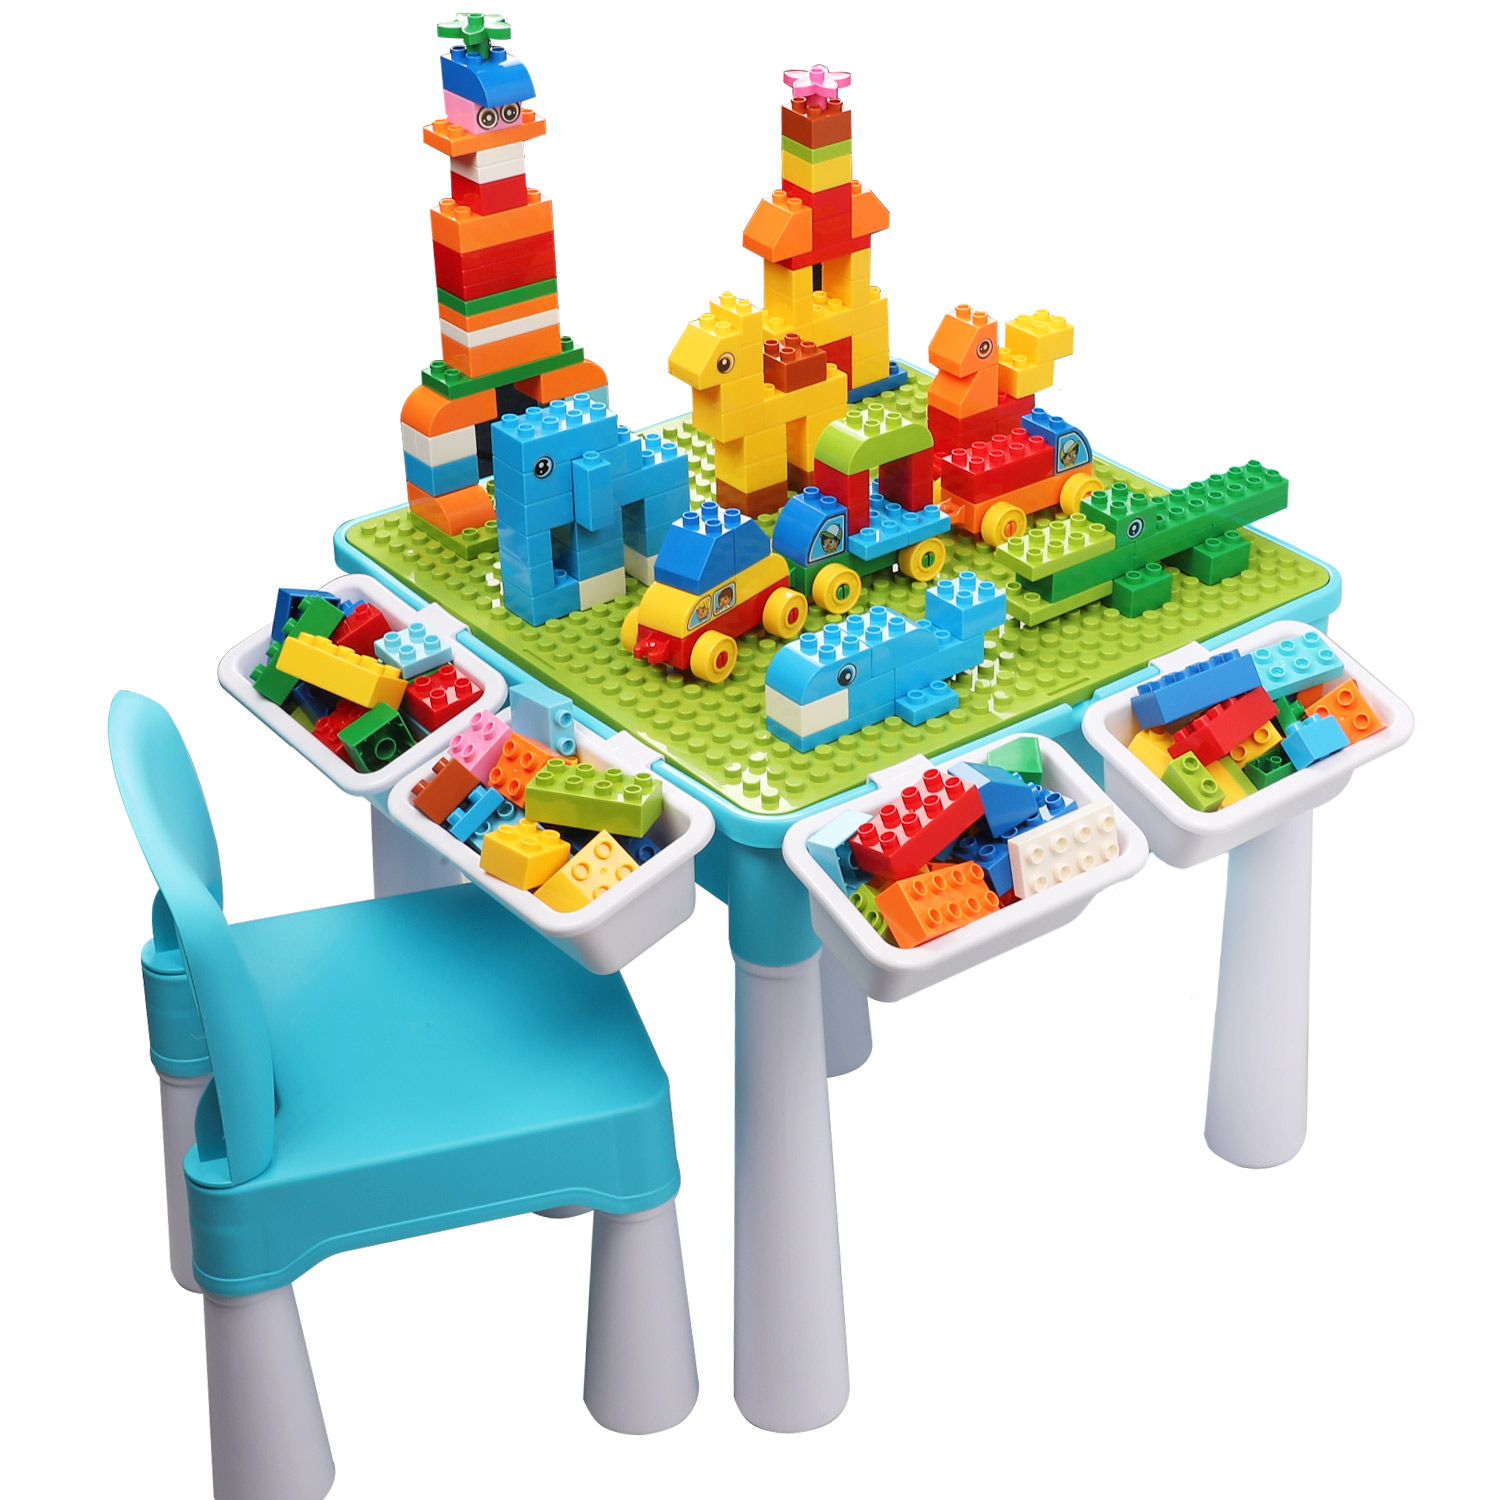 BURGKIDZ Classic DIY Table With 128 Pcs Building Blocks Compatible With LegoED DuploED Learning Toys For Children Christmas Gift